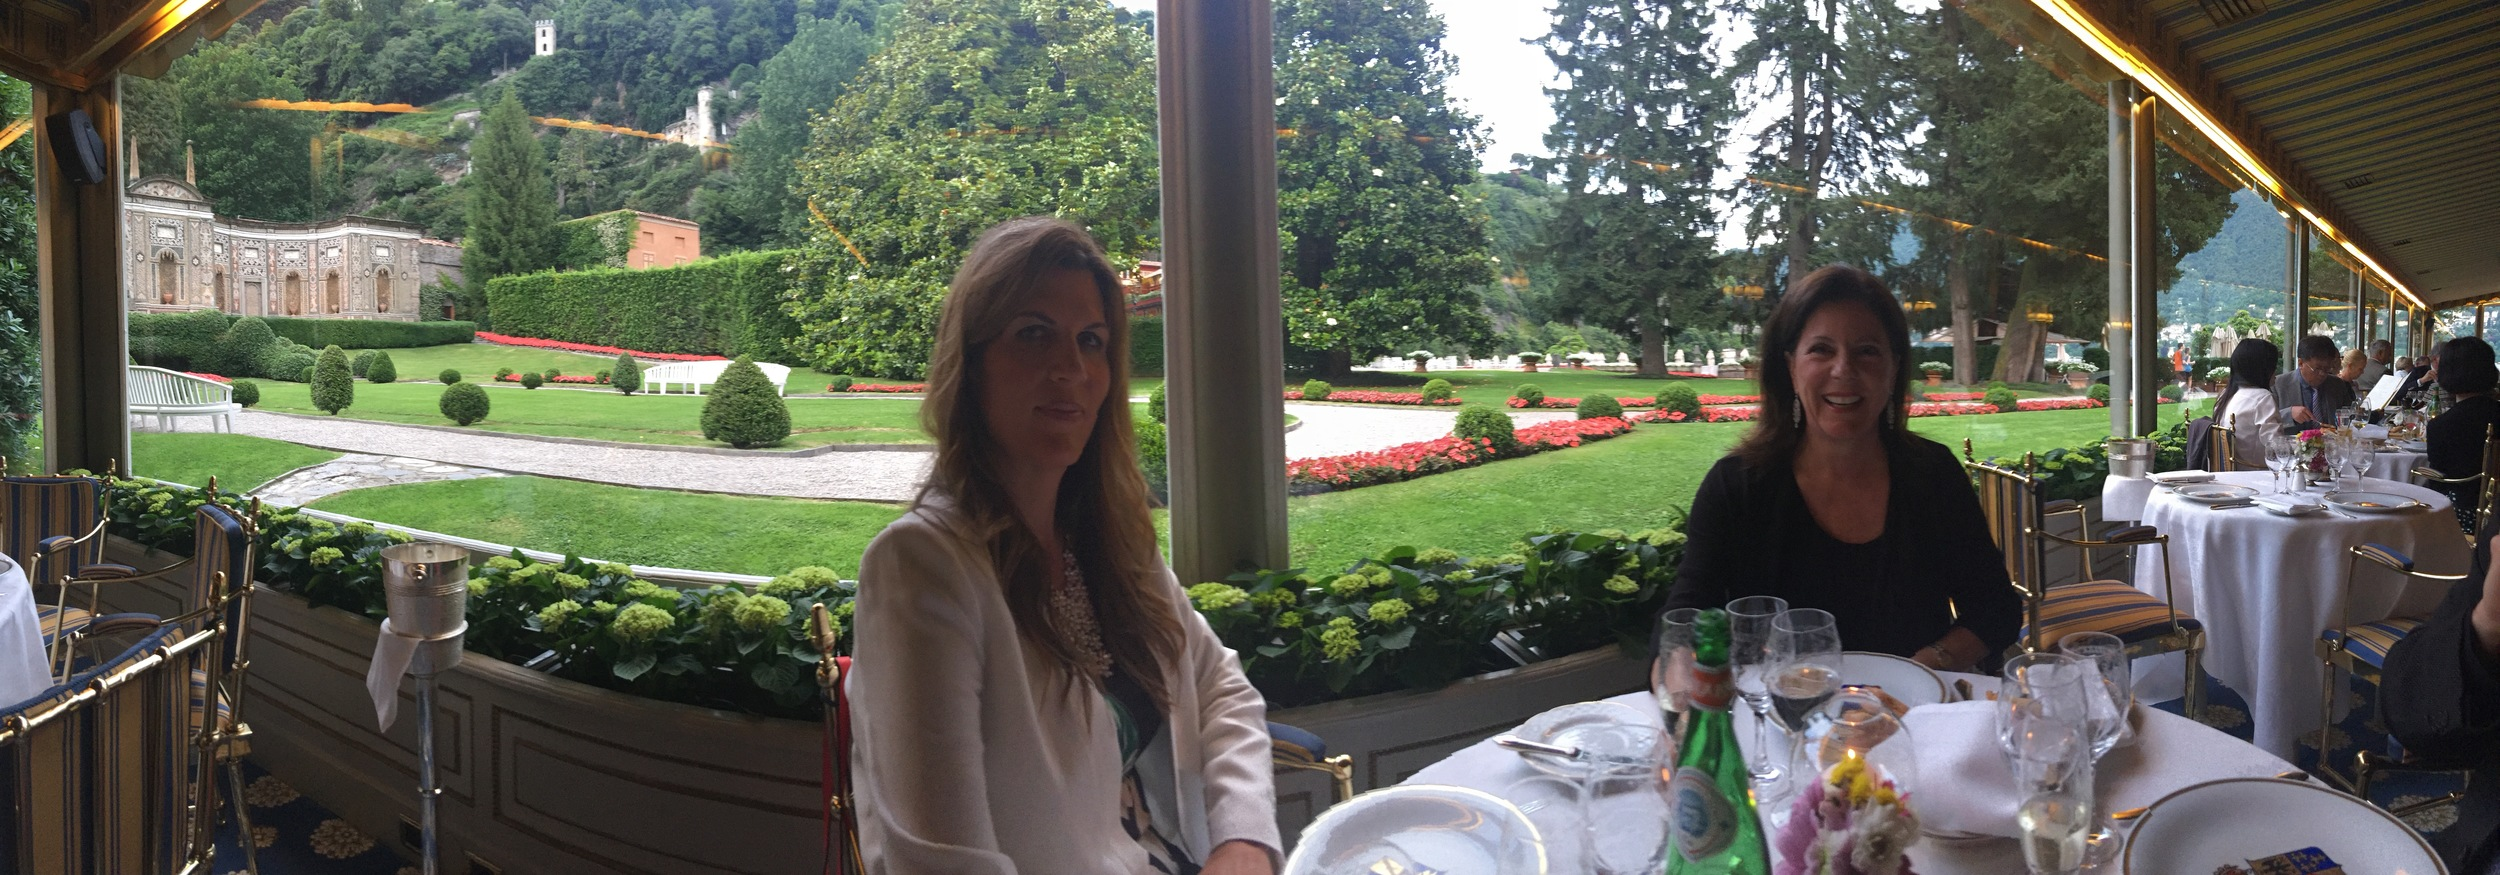 Dinner at the Villa d'Este